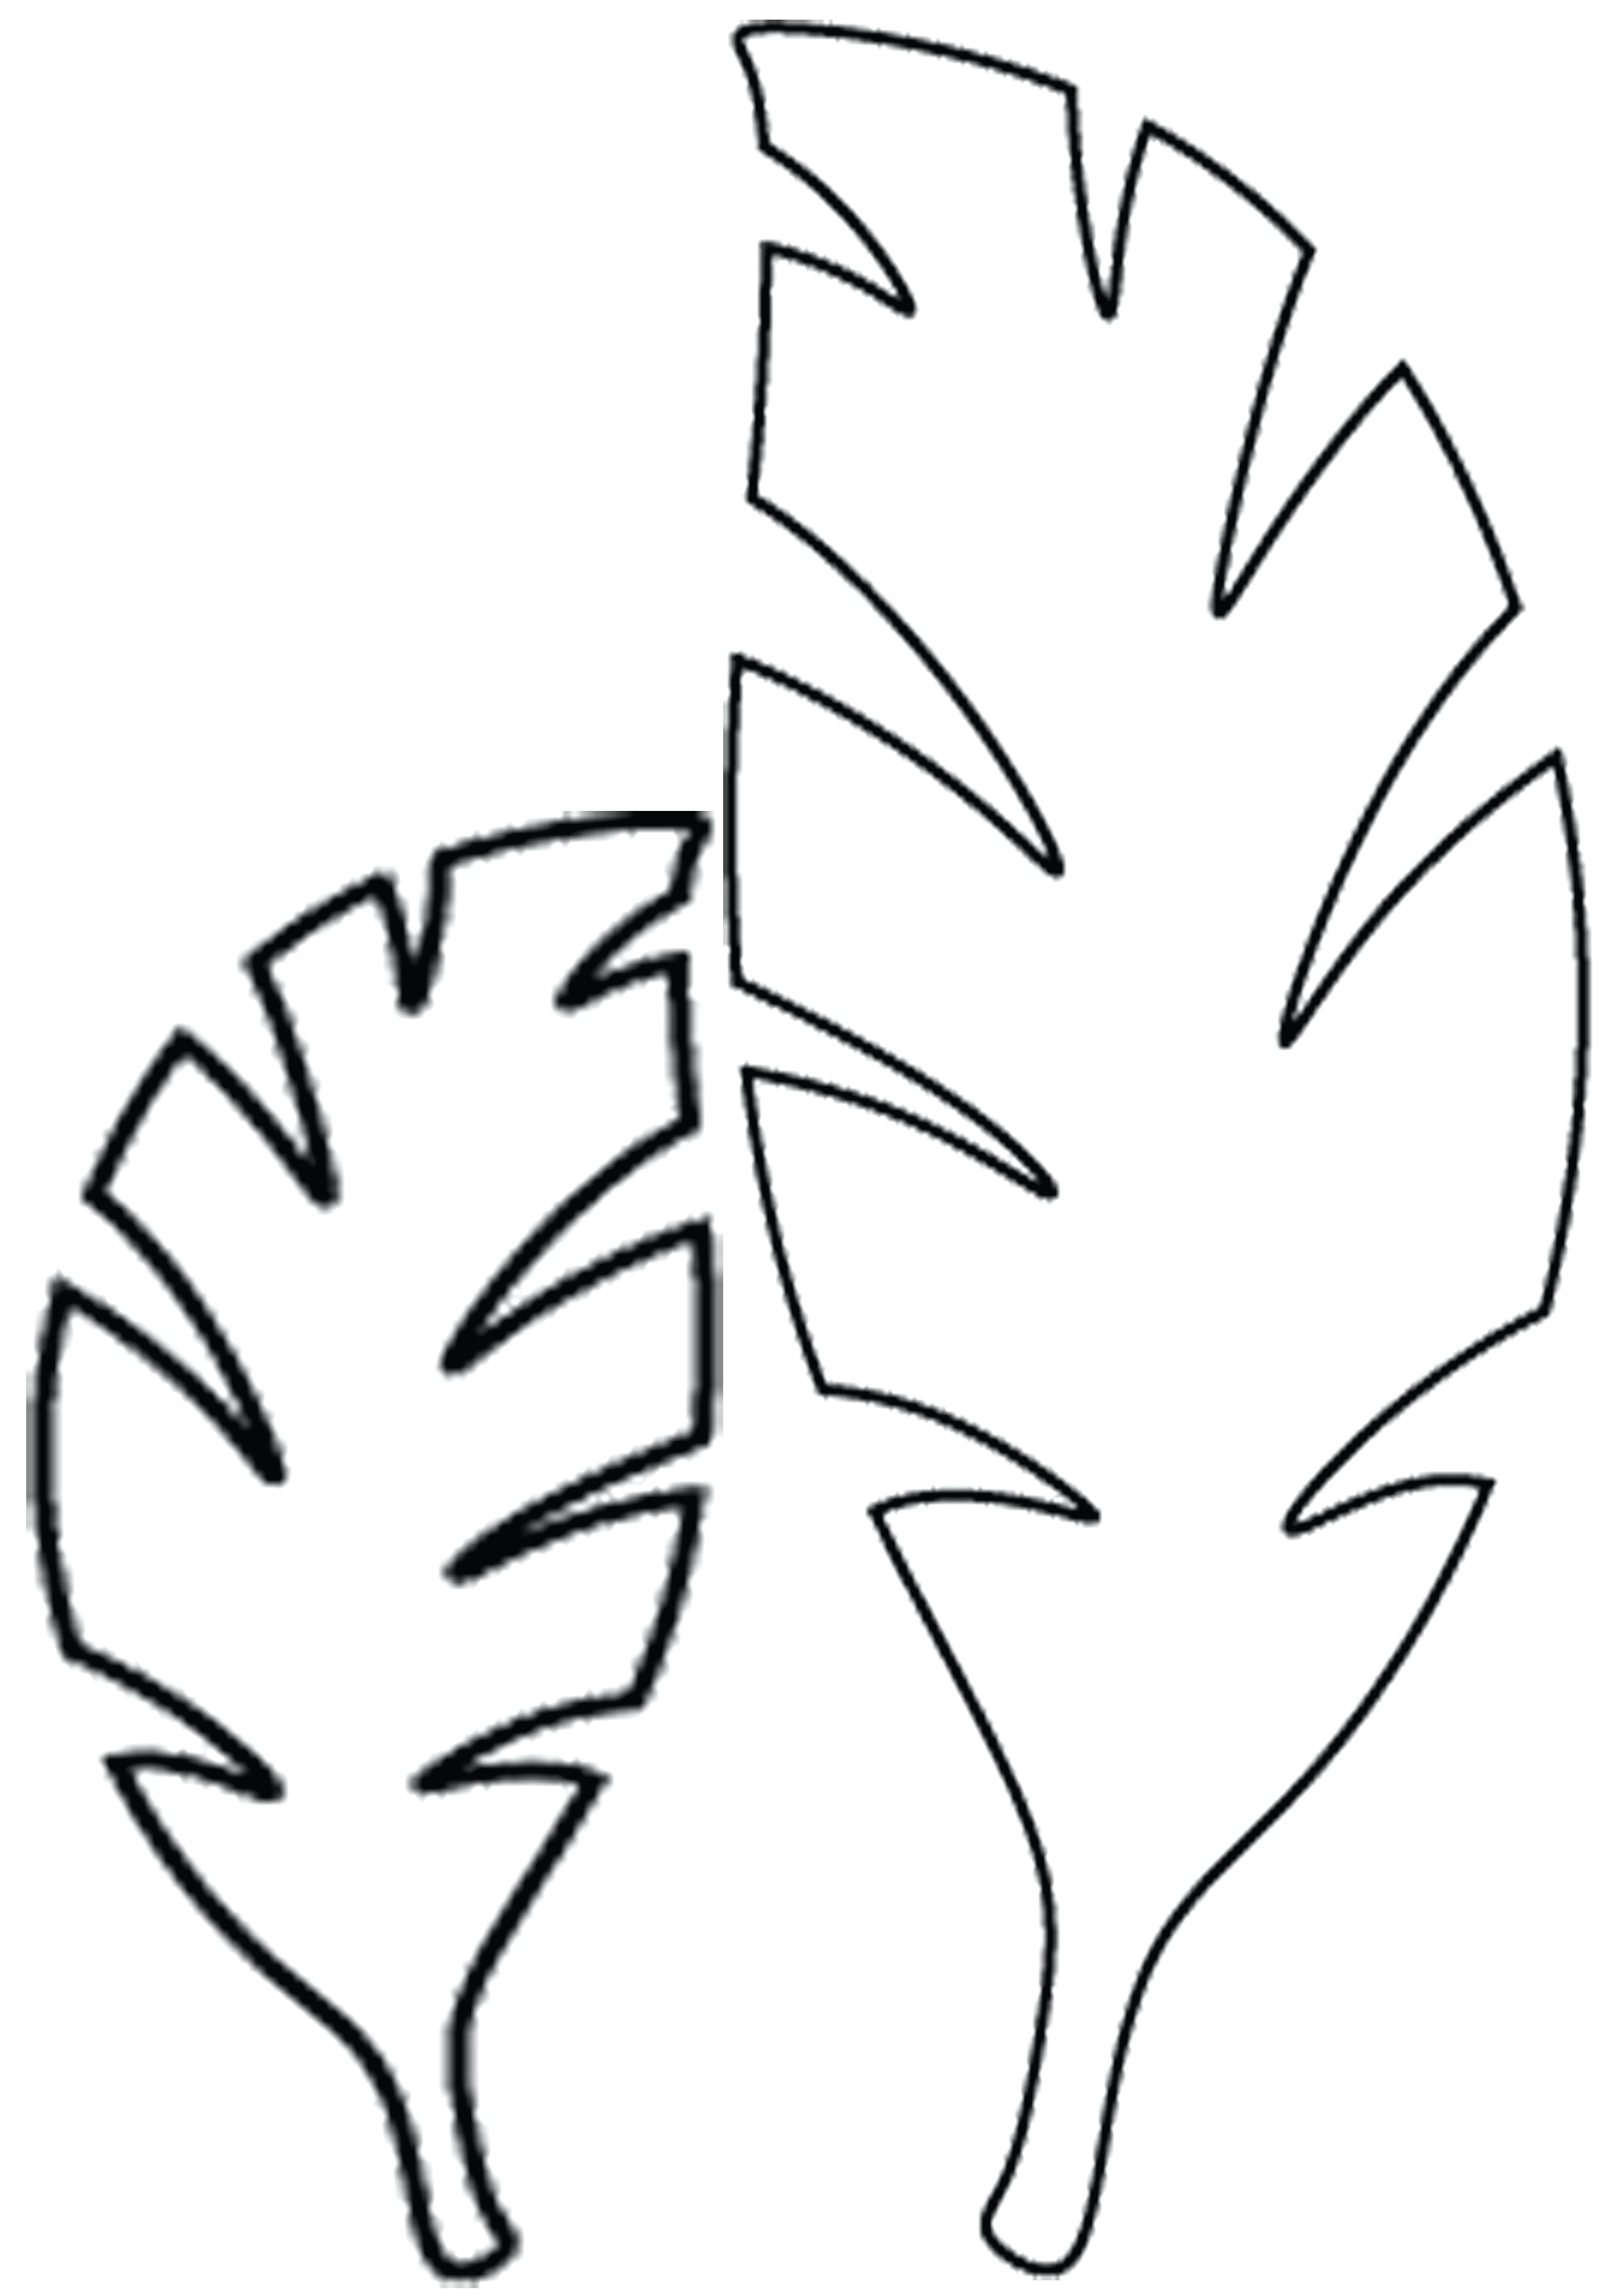 Jungle Leaf Templates to Cut Out Rainforest Leaf Template